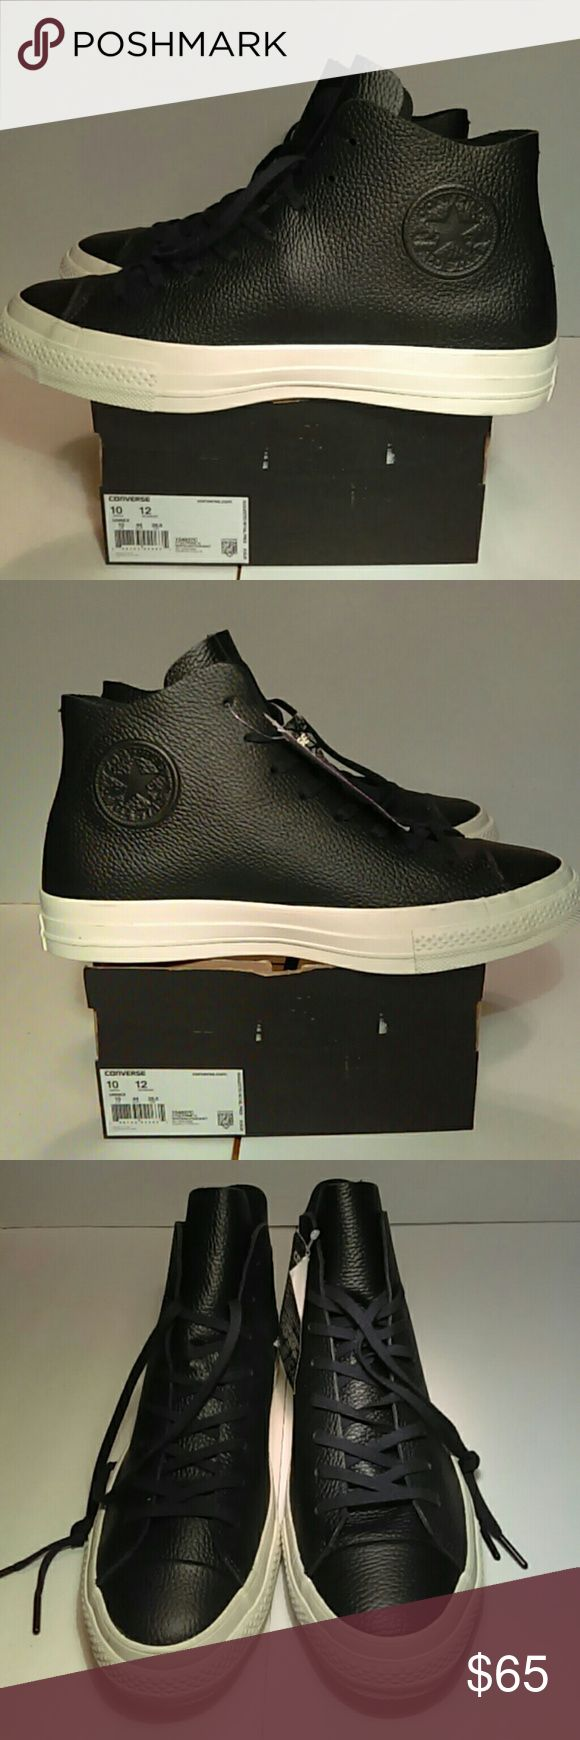 BRAND NEW CONVERSE LEATHER  MEN'S SNEAKER 100% AUTHENTIC CONVERSE  LEATHER MEN'S SNEAKER UNISEX MEN'S: 10. WMN : 12 ORIGINAL PRICE $ 135 REASONABLE. OFFER IS. WELCOMED Converse Shoes Sneakers